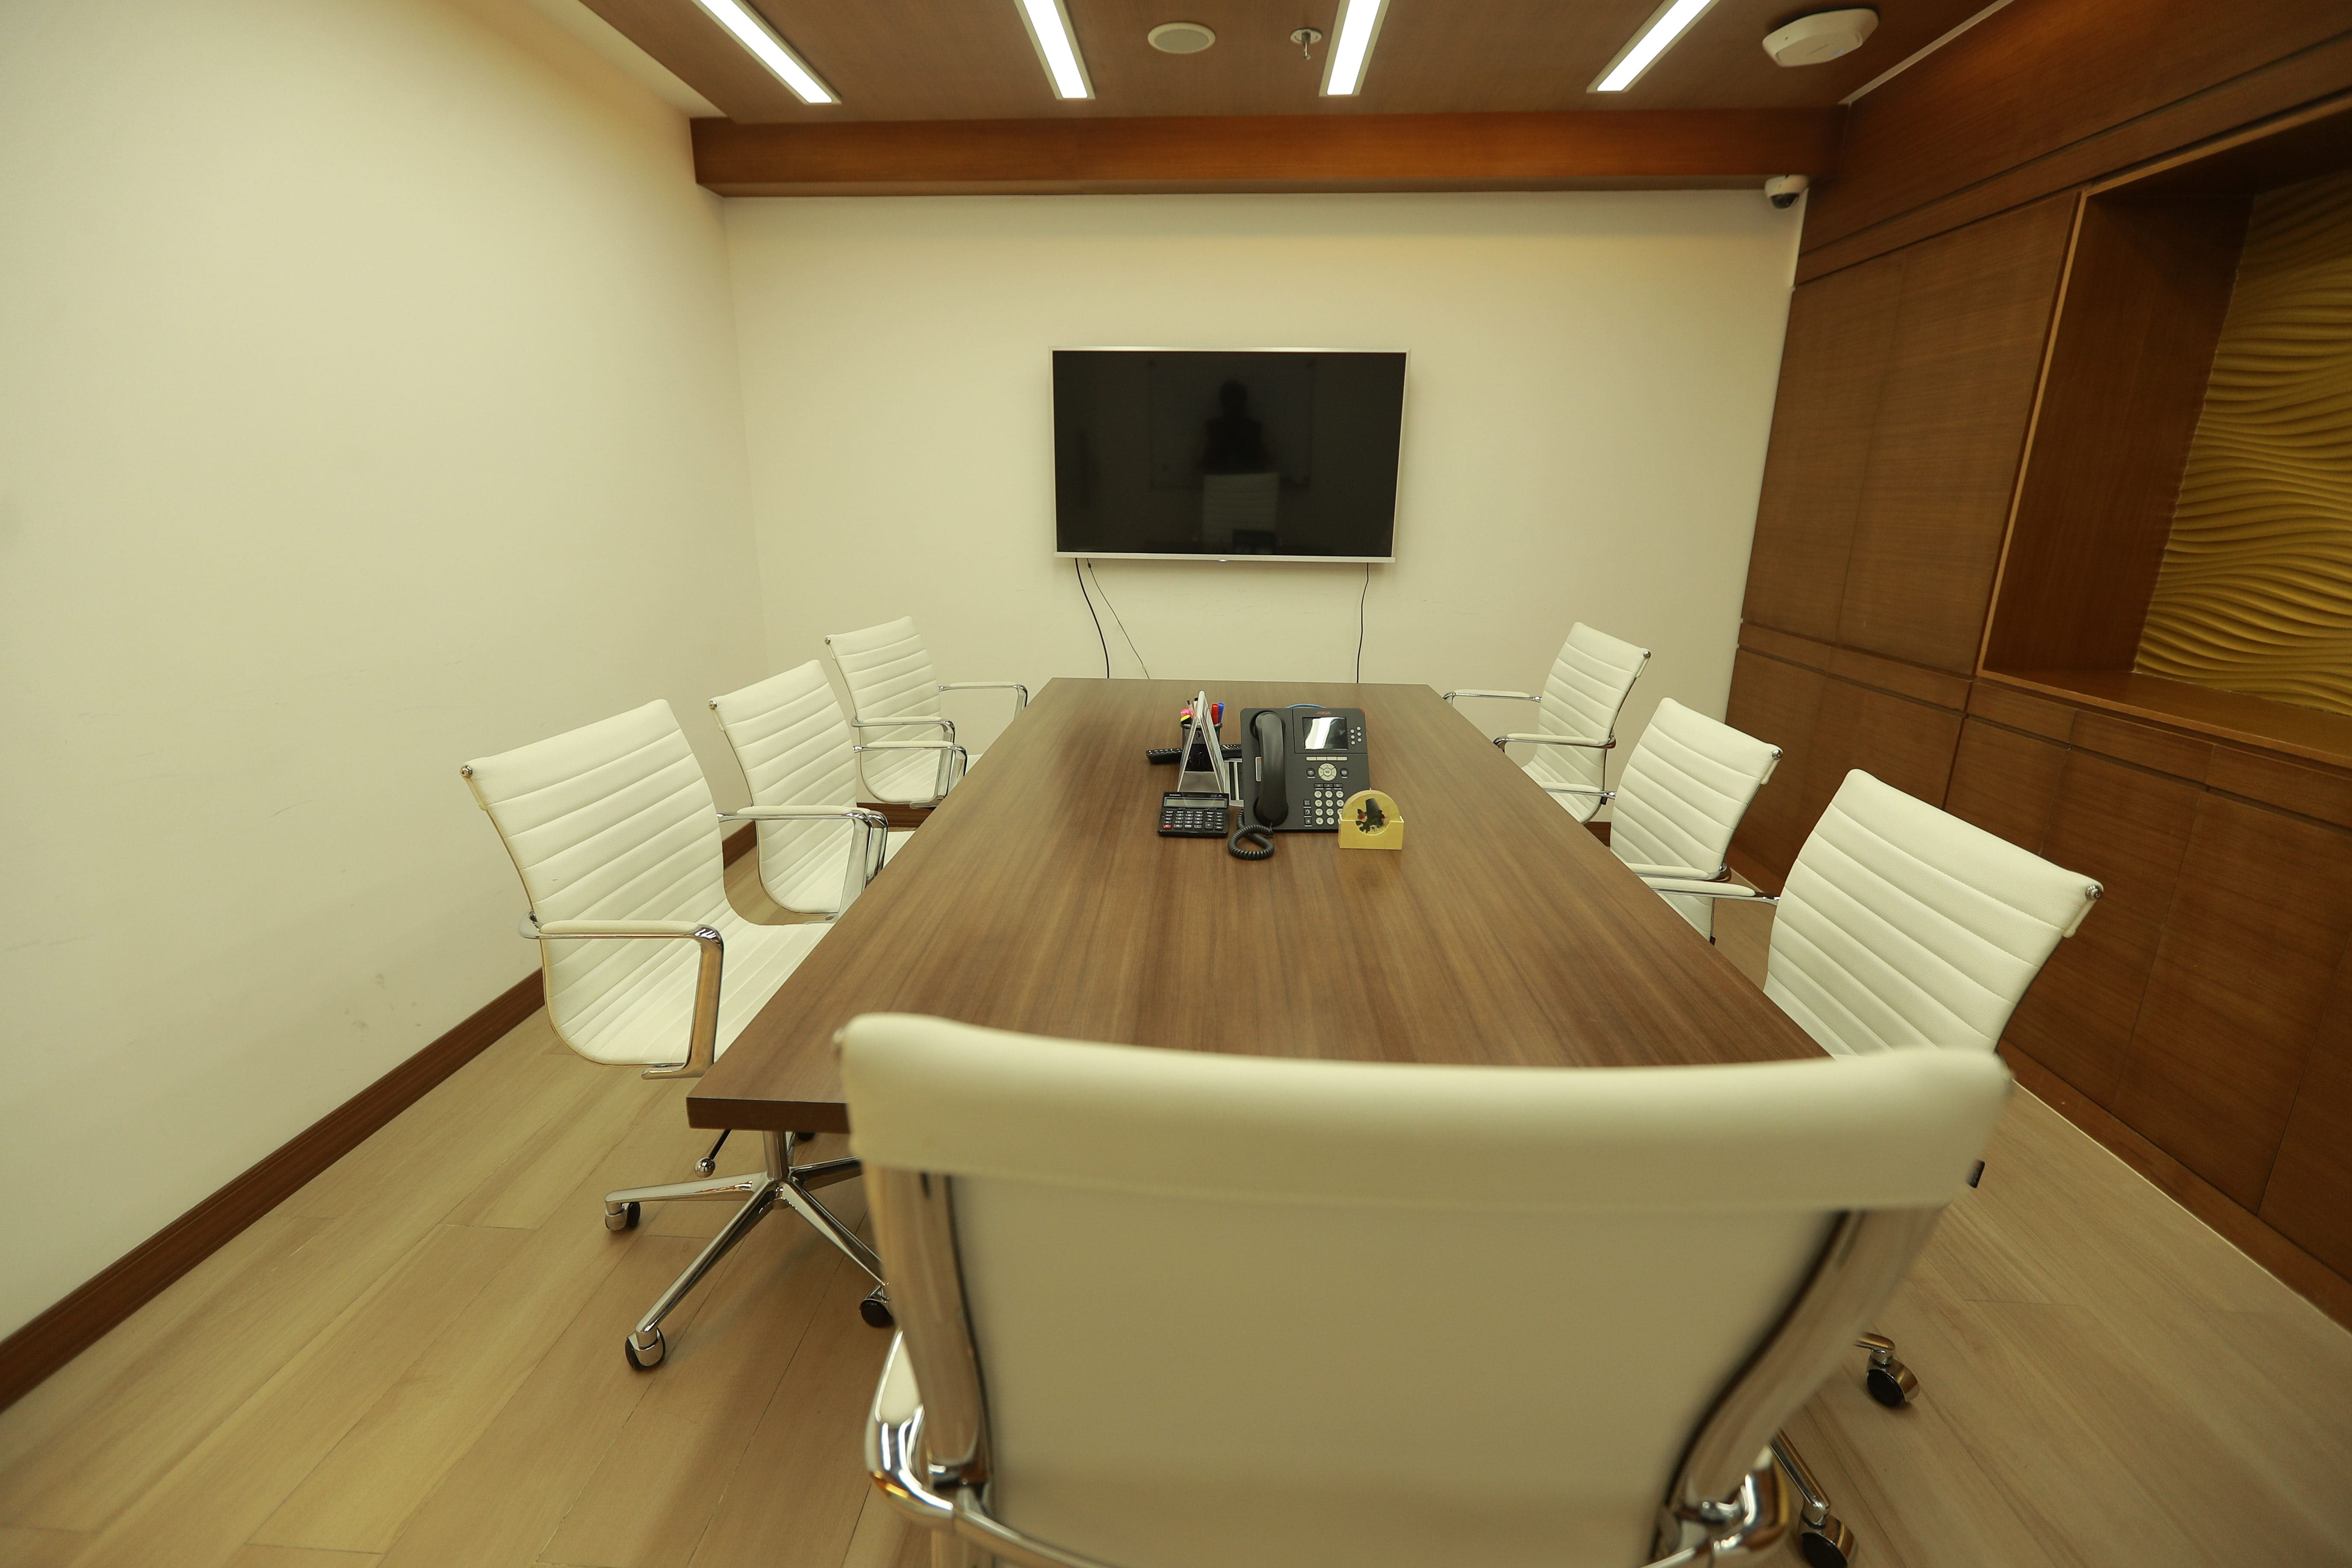 3. Meeting Room 1